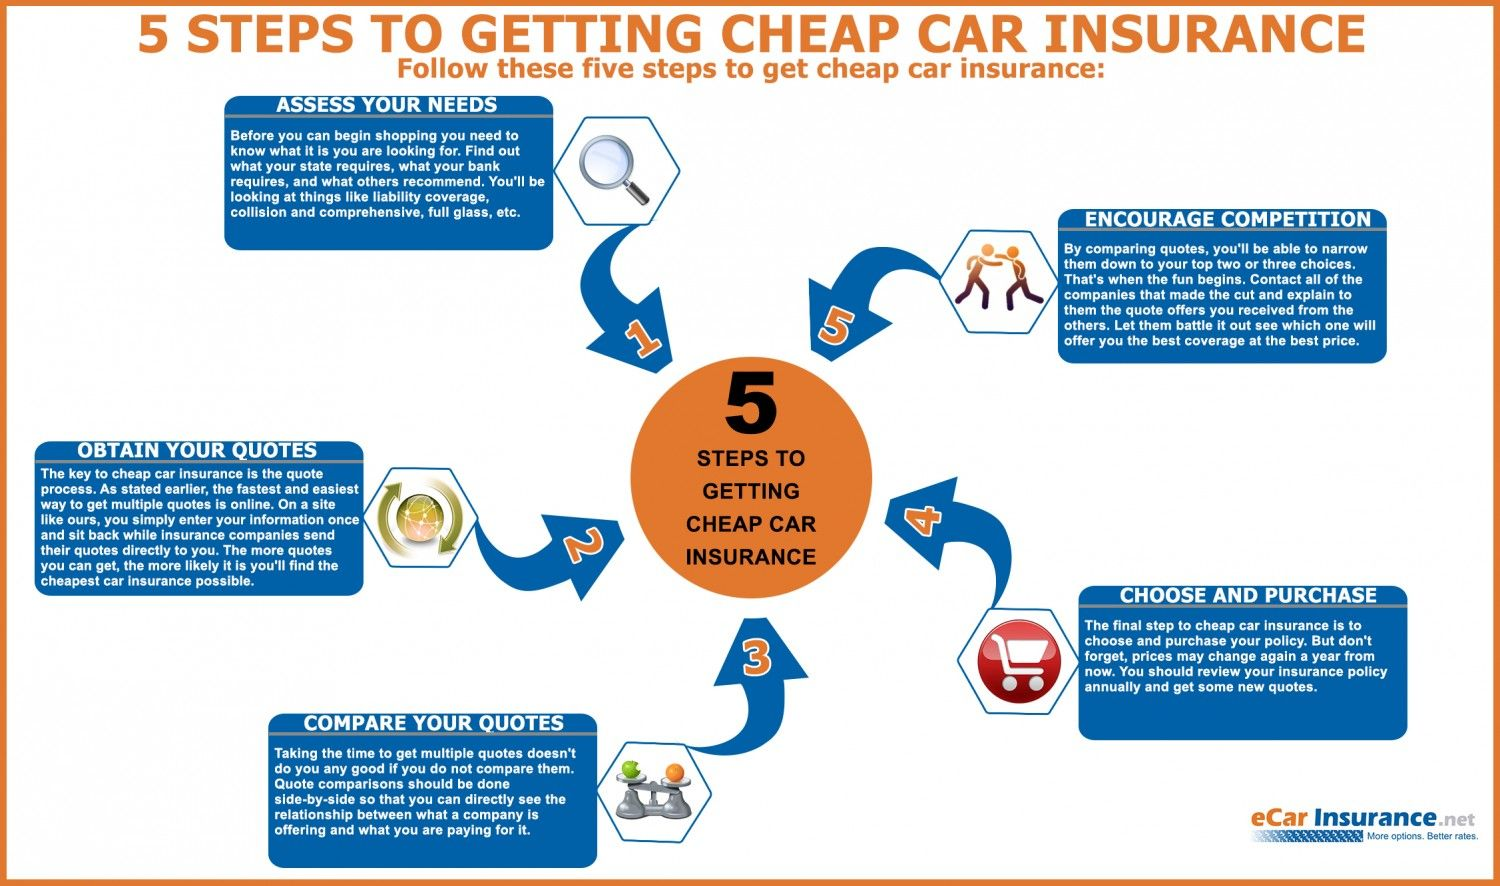 Auto Insurance Quotes Comparison Fair 5 Steps To Getting Cheap Car Insurance #infographic  Car And Motor